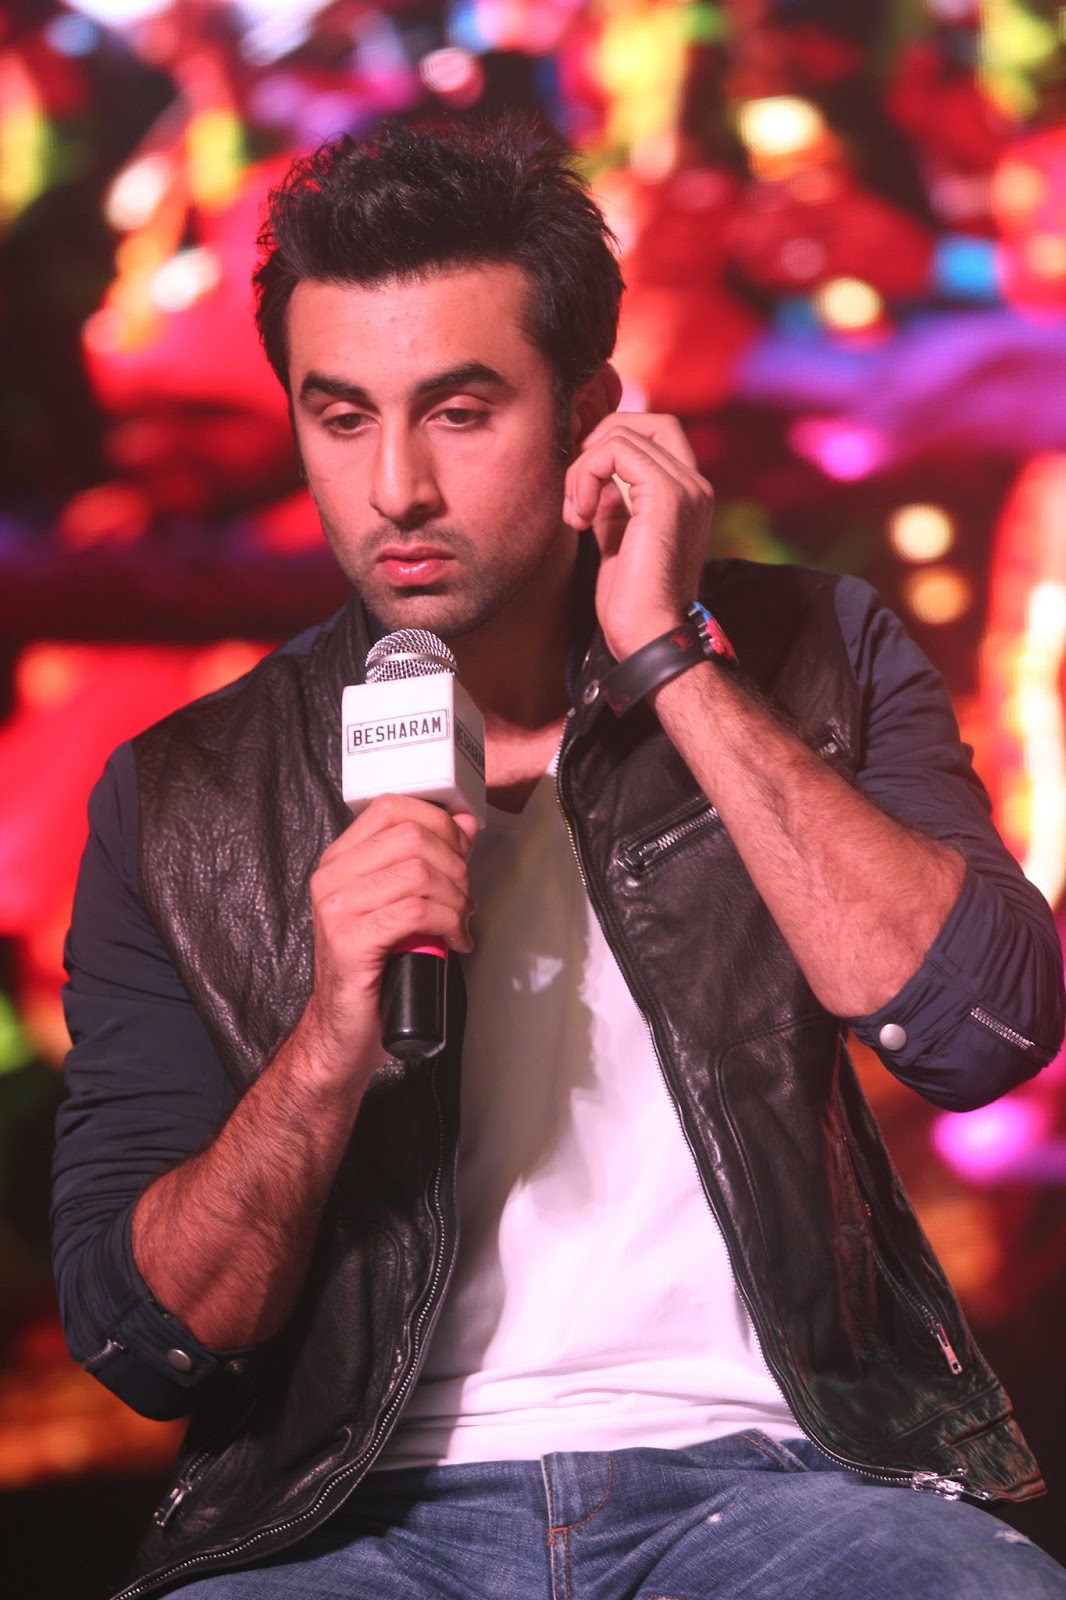 http://2.bp.blogspot.com/-PlLlOTBsdmY/UinBabyjjWI/AAAAAAABiRQ/0AHJyAo42LA/s1600/Ranbir+Kapoor+at+the+launch+of+song+%2527Aare+Aare%2527+from+movie+%2527Besharam%2527+%252818%2529.JPG